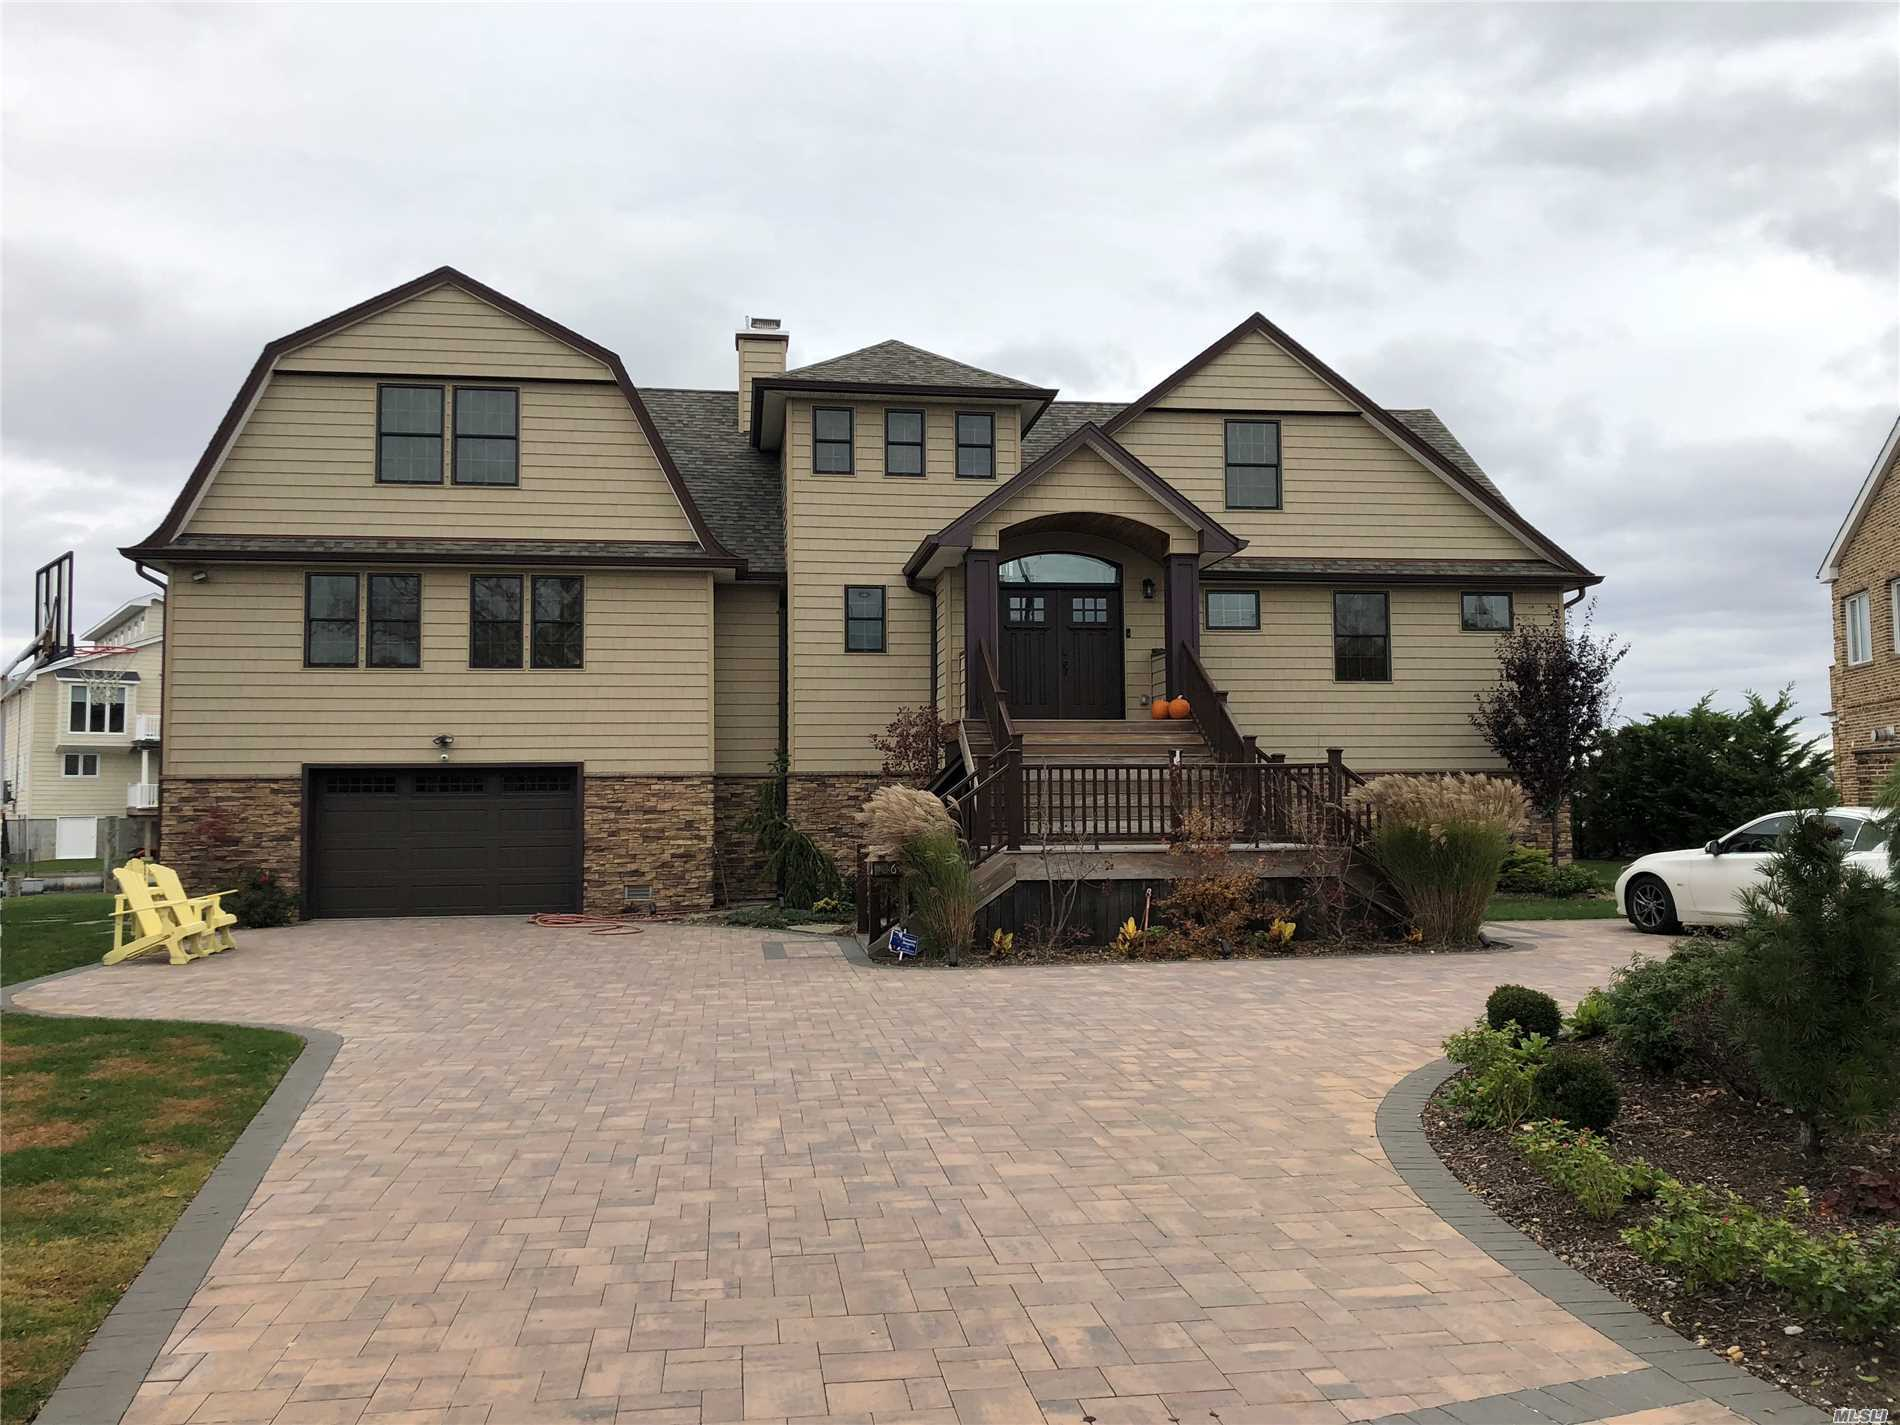 Enjoy Breathtaking Views Of The Great South Bay In This Lifted And Completely New Waterfront Home.. Deep Water Canal Protection With Open Bay Views! 130' Of New Navy Bulk Heading. Stainless & Granite Chefs Kitchen, Custom Baths, Main Floor Master Suite W Large Wic And On Suite Bath. Multi Level Decks. Large Circular Driveway. Inground Sprinklers, Custom Millwork Throughout. No Expense Spared On This Amazing Home. Make This House Yours For The New Year .